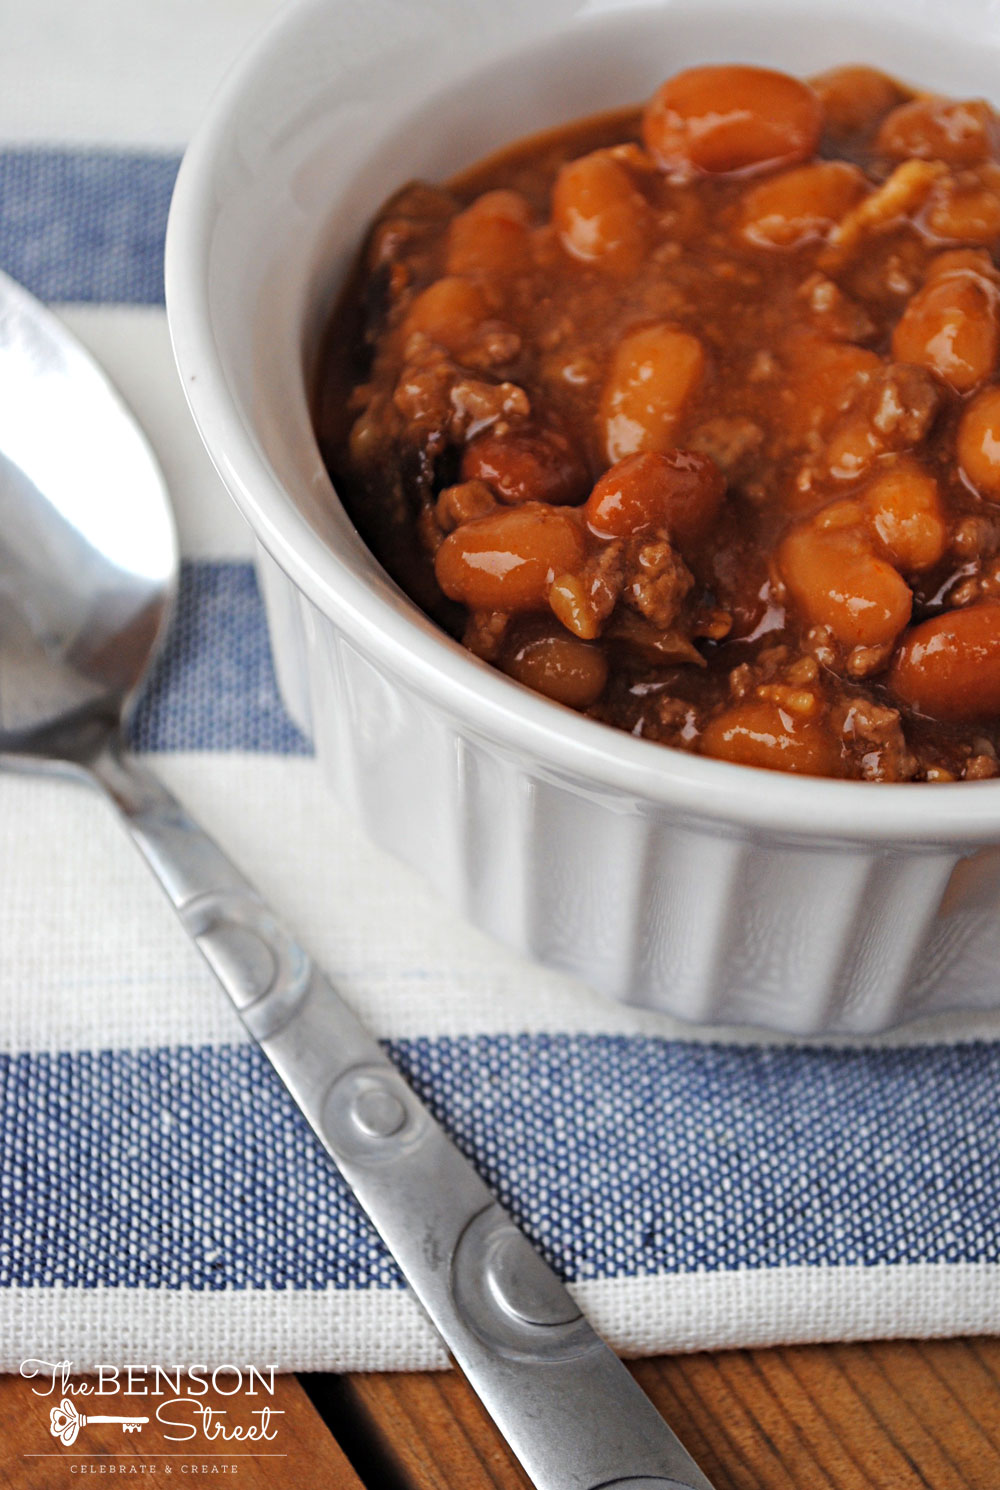 Simple and easy slow cooker baked beans recipe shared on thebensonstreet.com